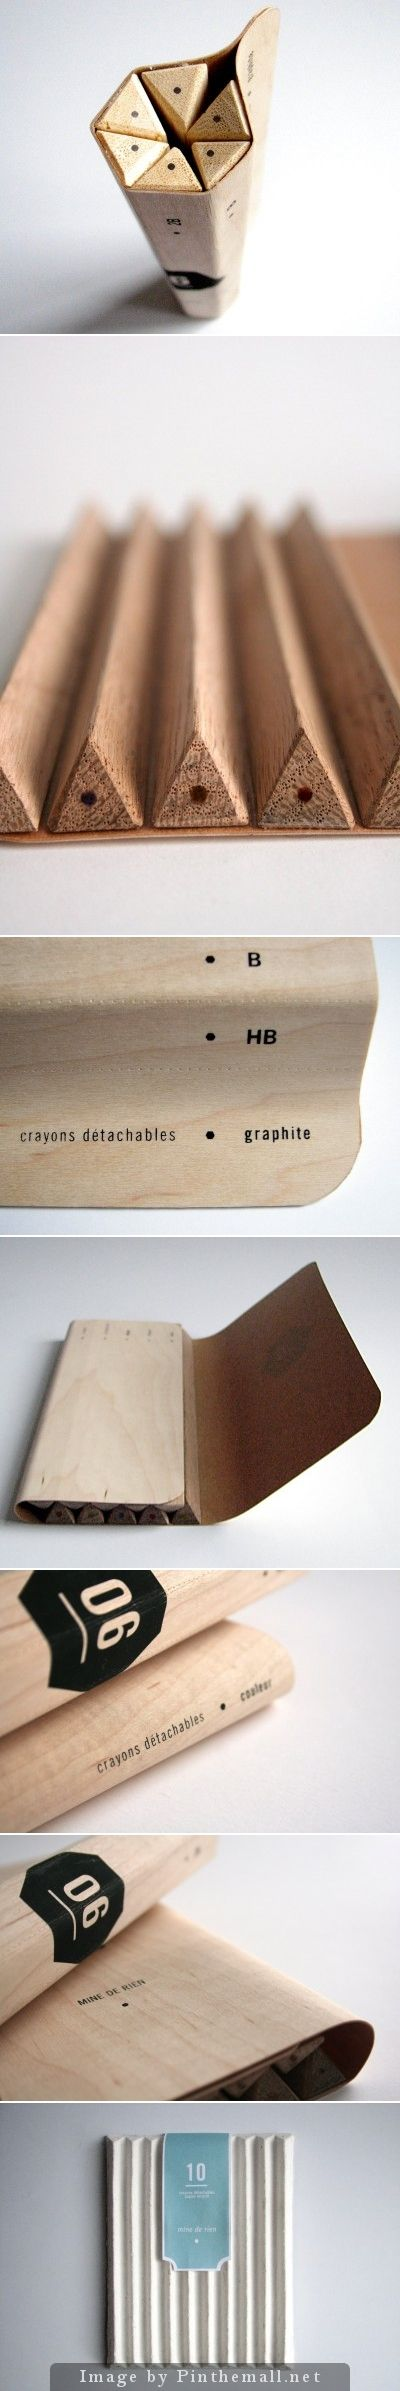 """Maude Bussières 